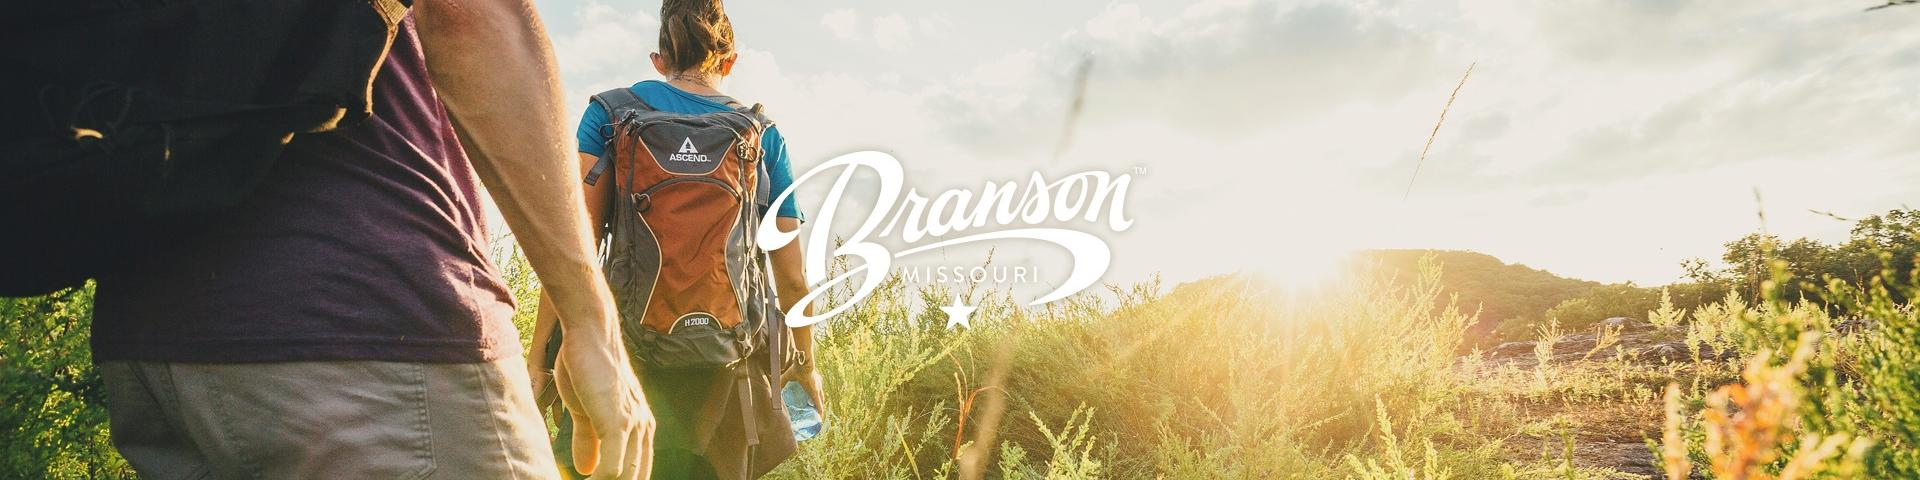 Branson Convention and Visitors Bureau